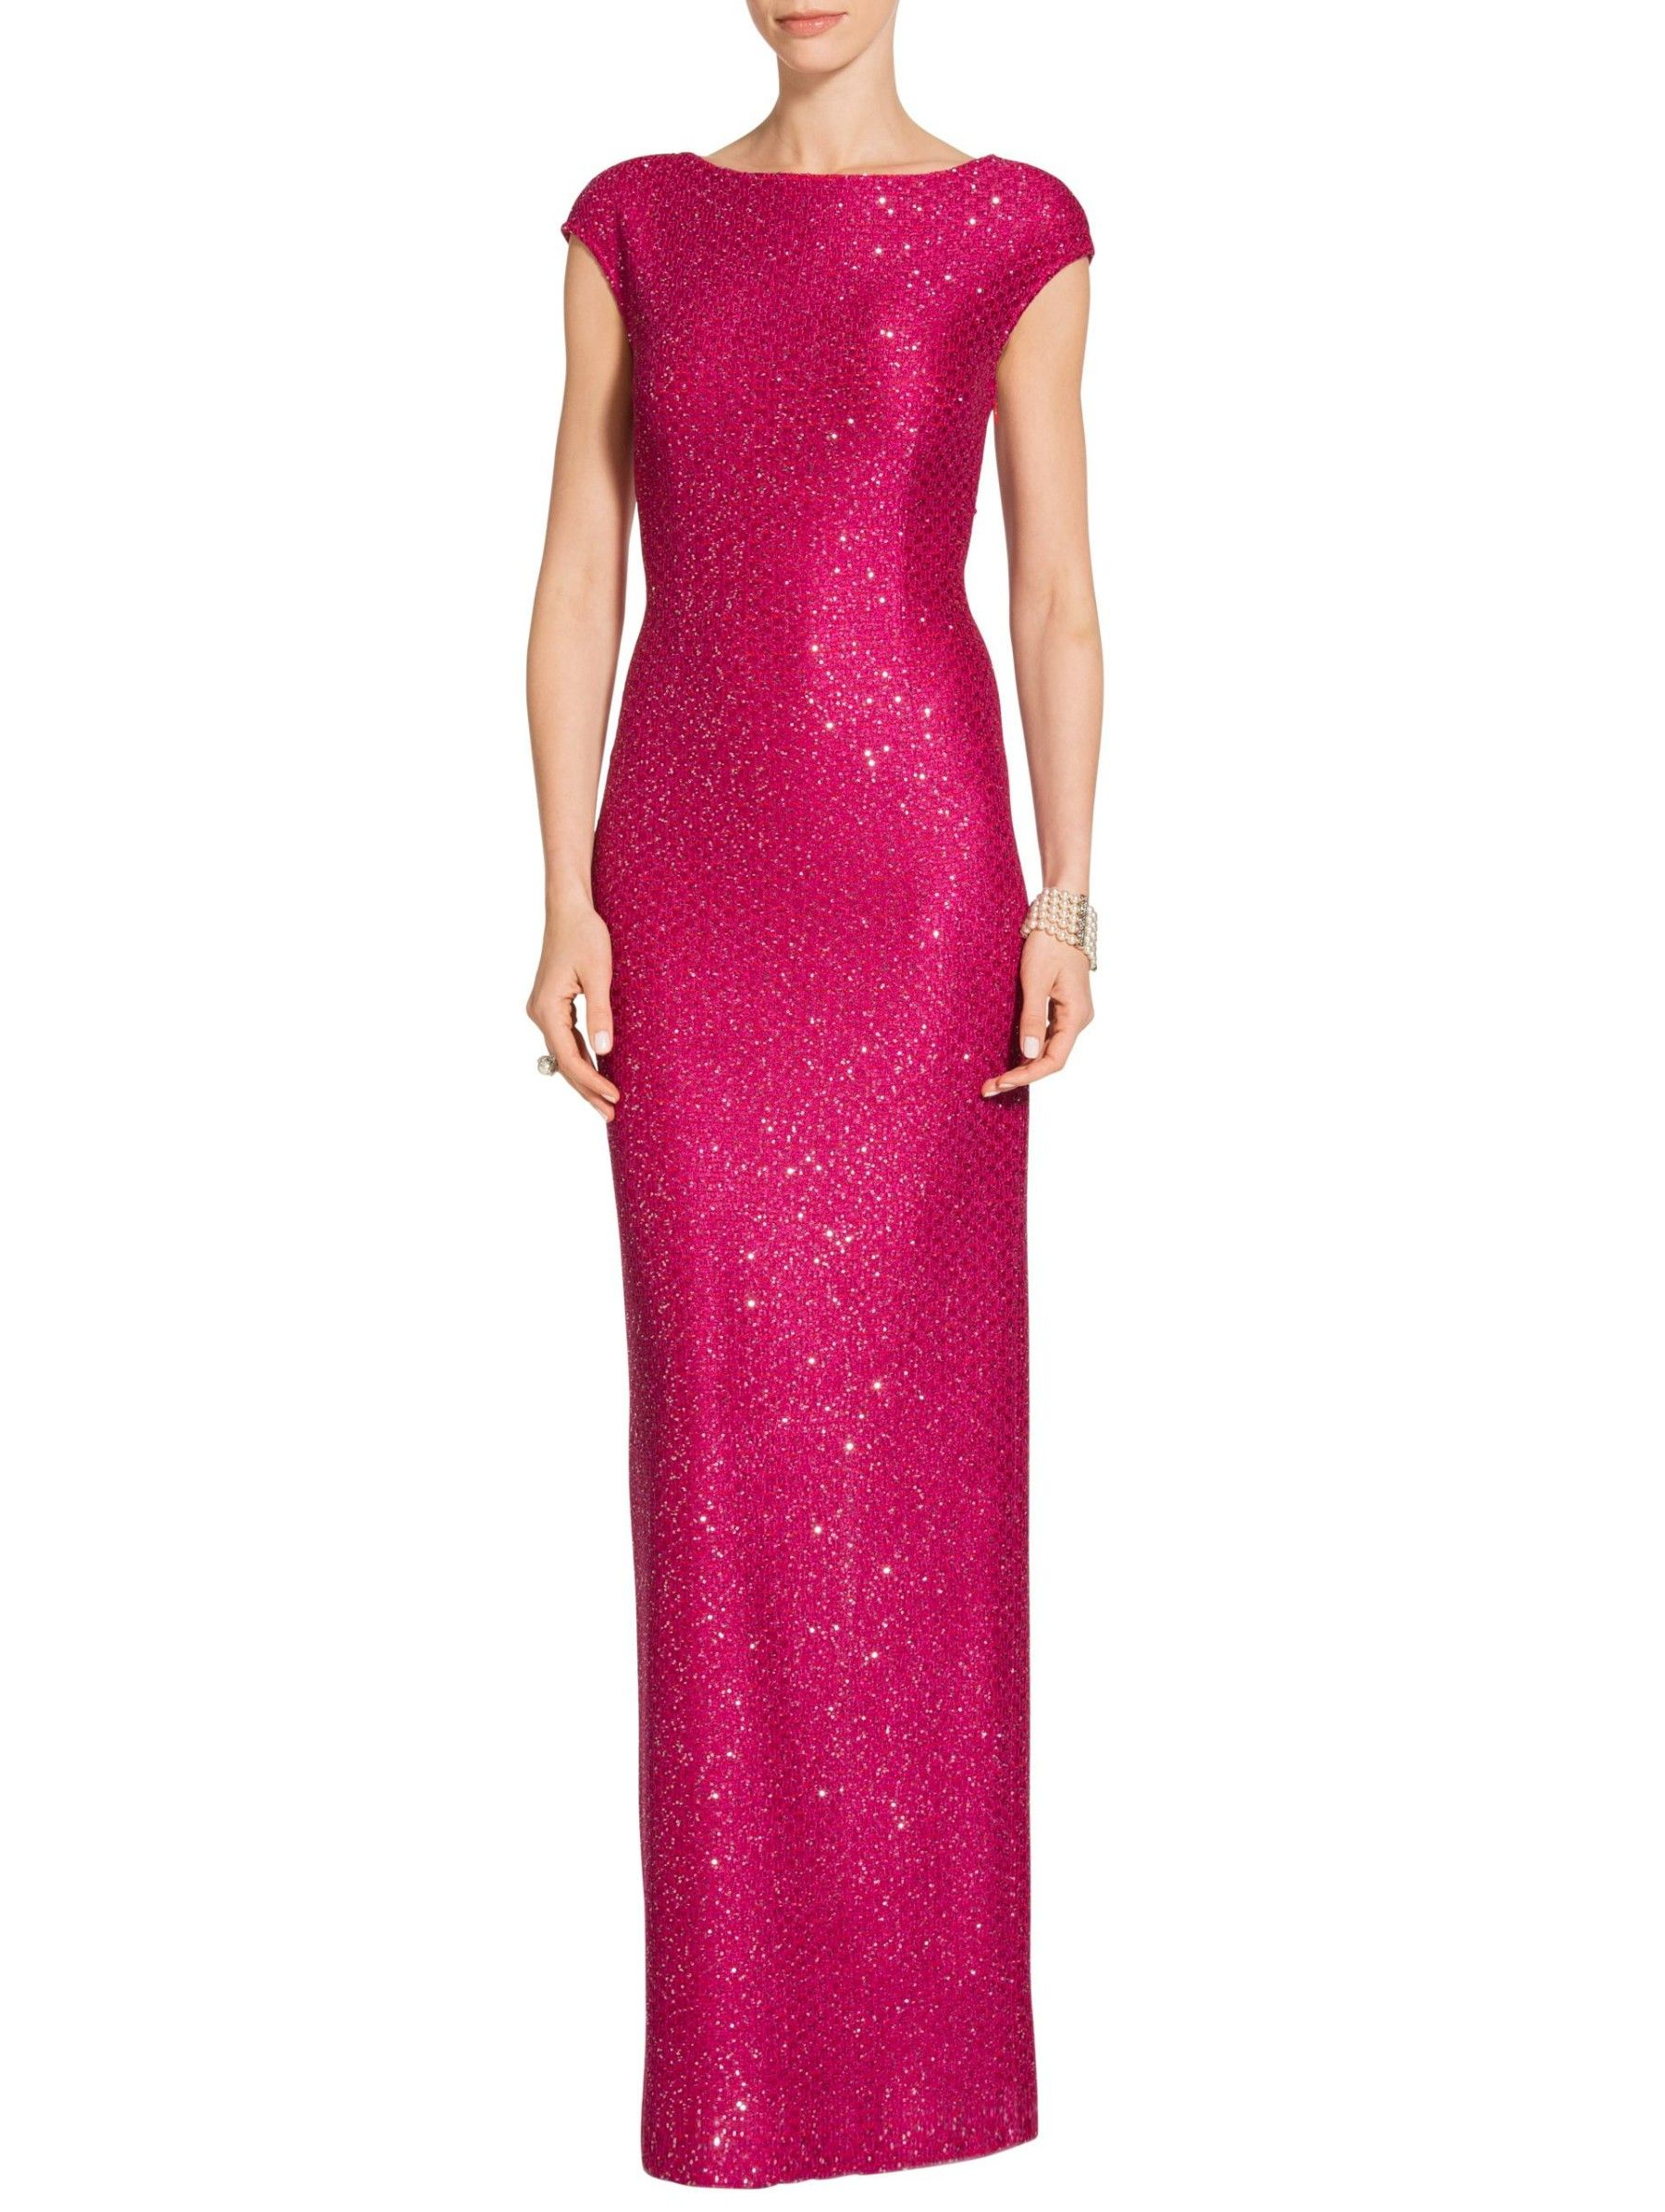 Womens Hansh Sequin Knit Gown   St. John Knits   Adorable Wallpapers ...